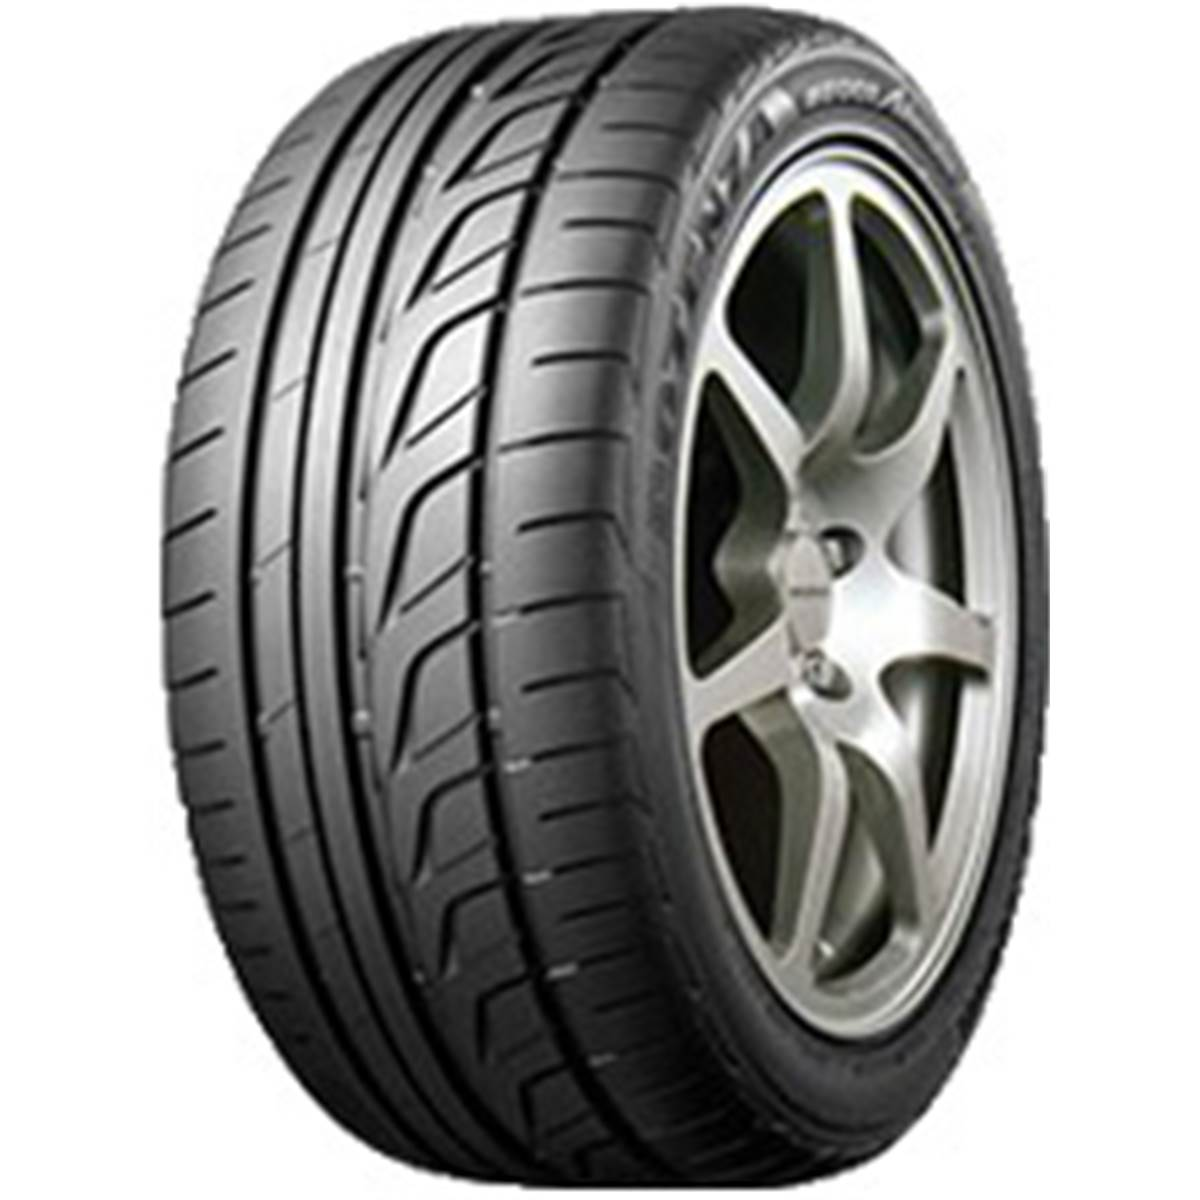 Pneu Bridgestone 205/50R16 87W Potenza Adrenalin Re002